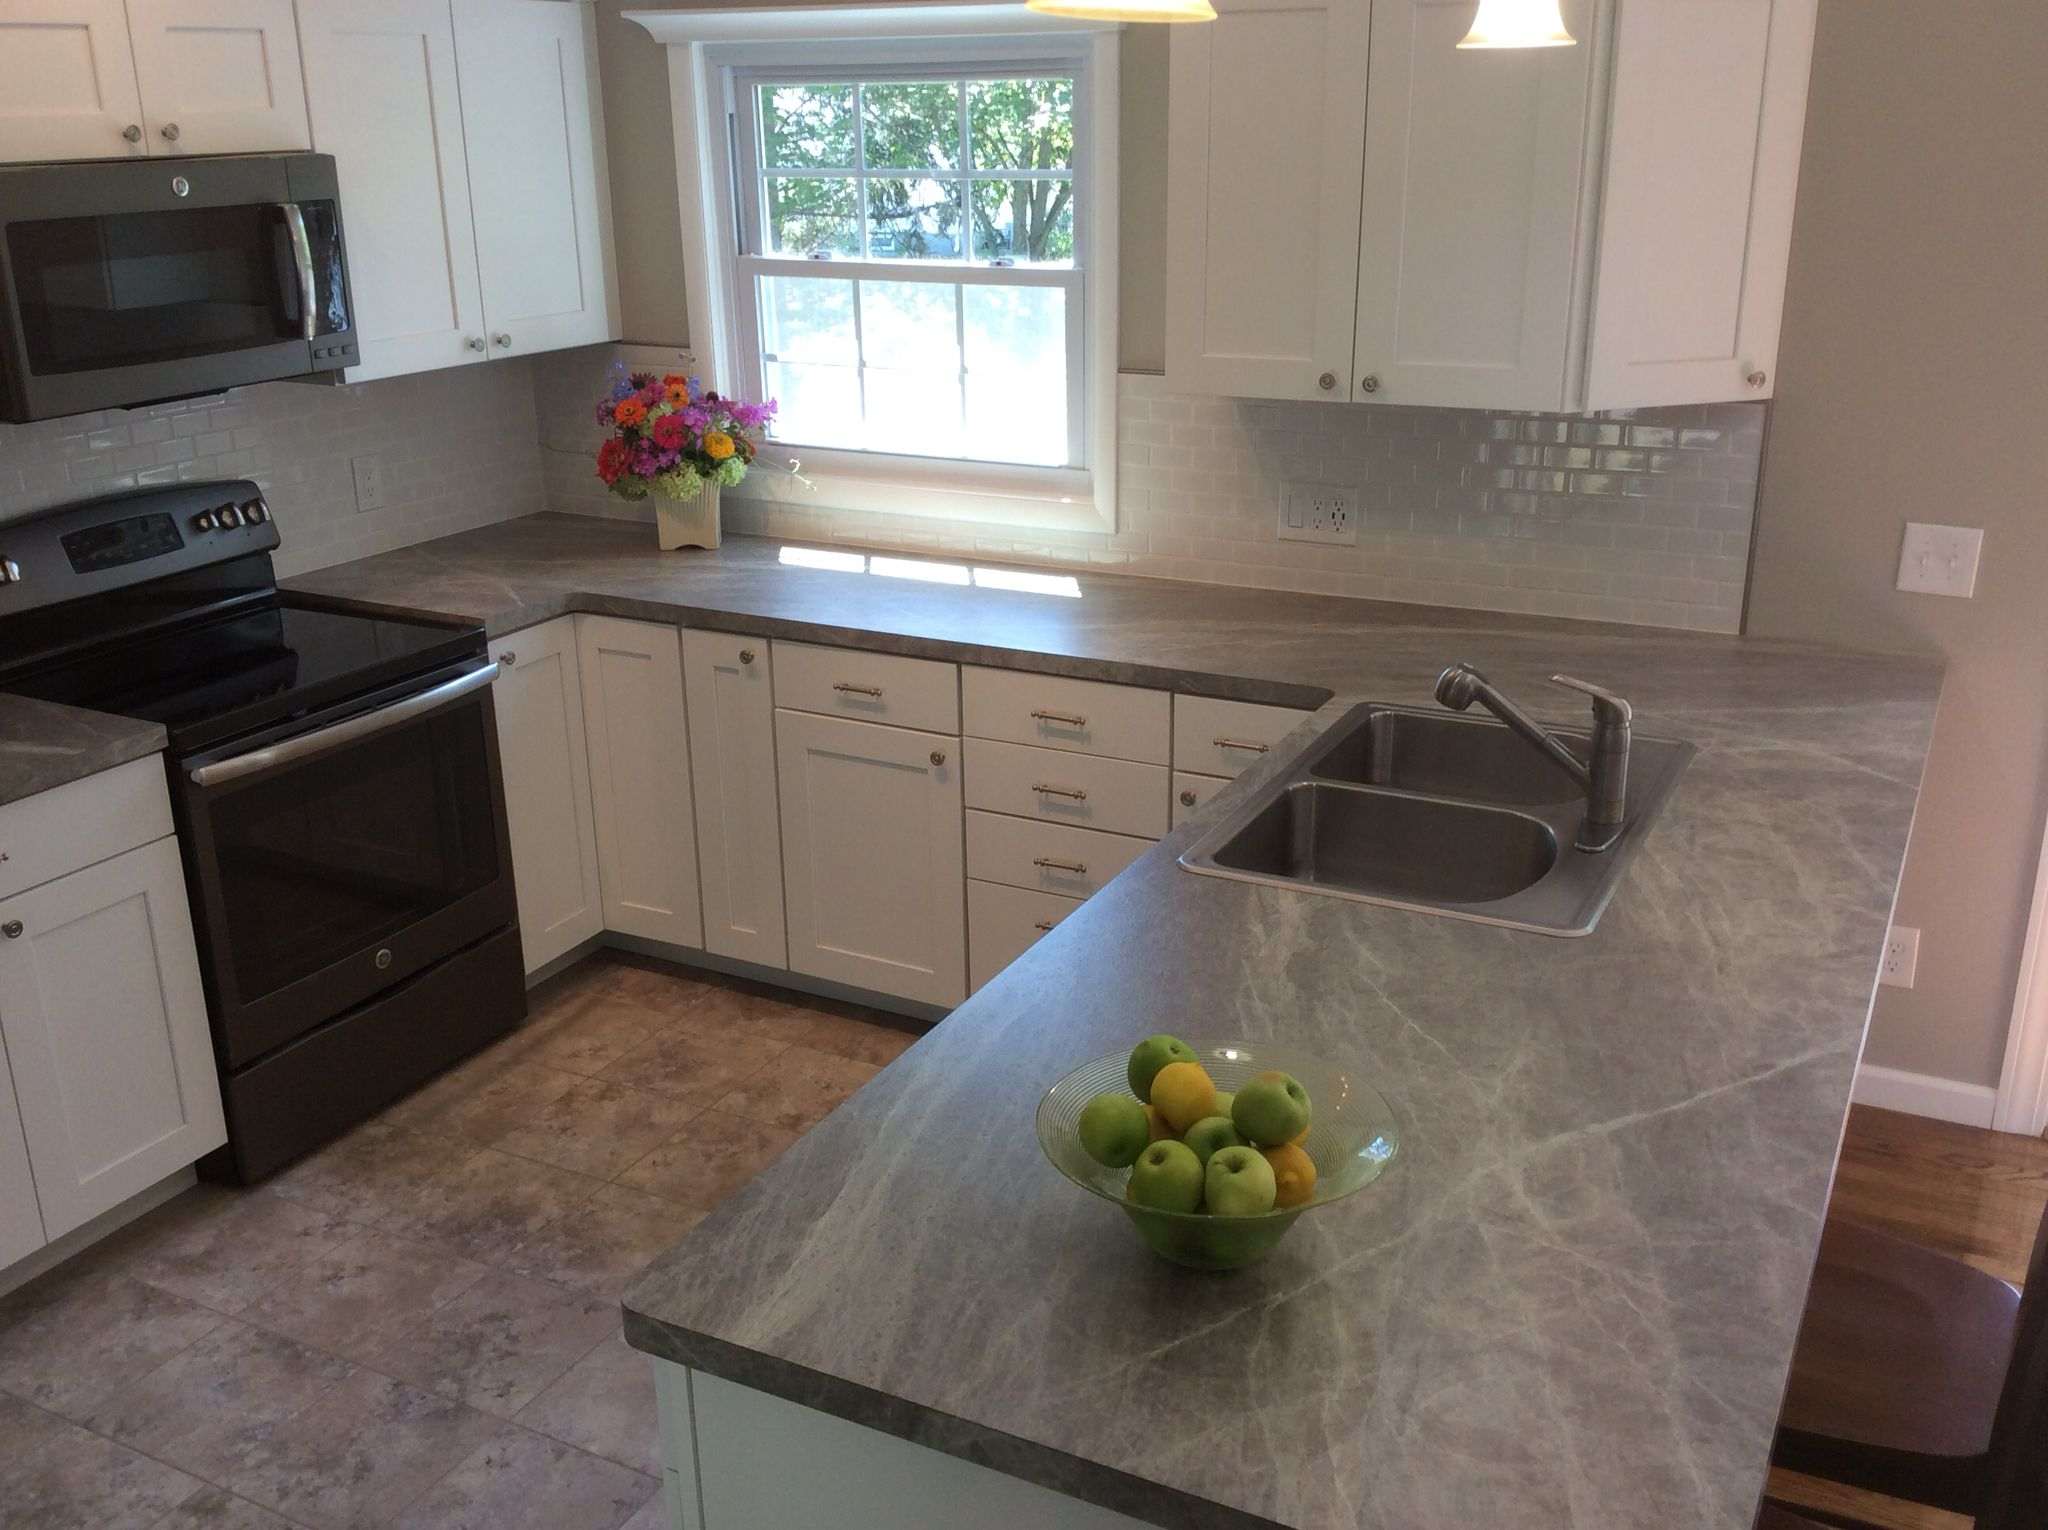 Laminate Kitchen Backsplash Sequoia Soapstone Formica Countertops Our Raised Ranch Flip